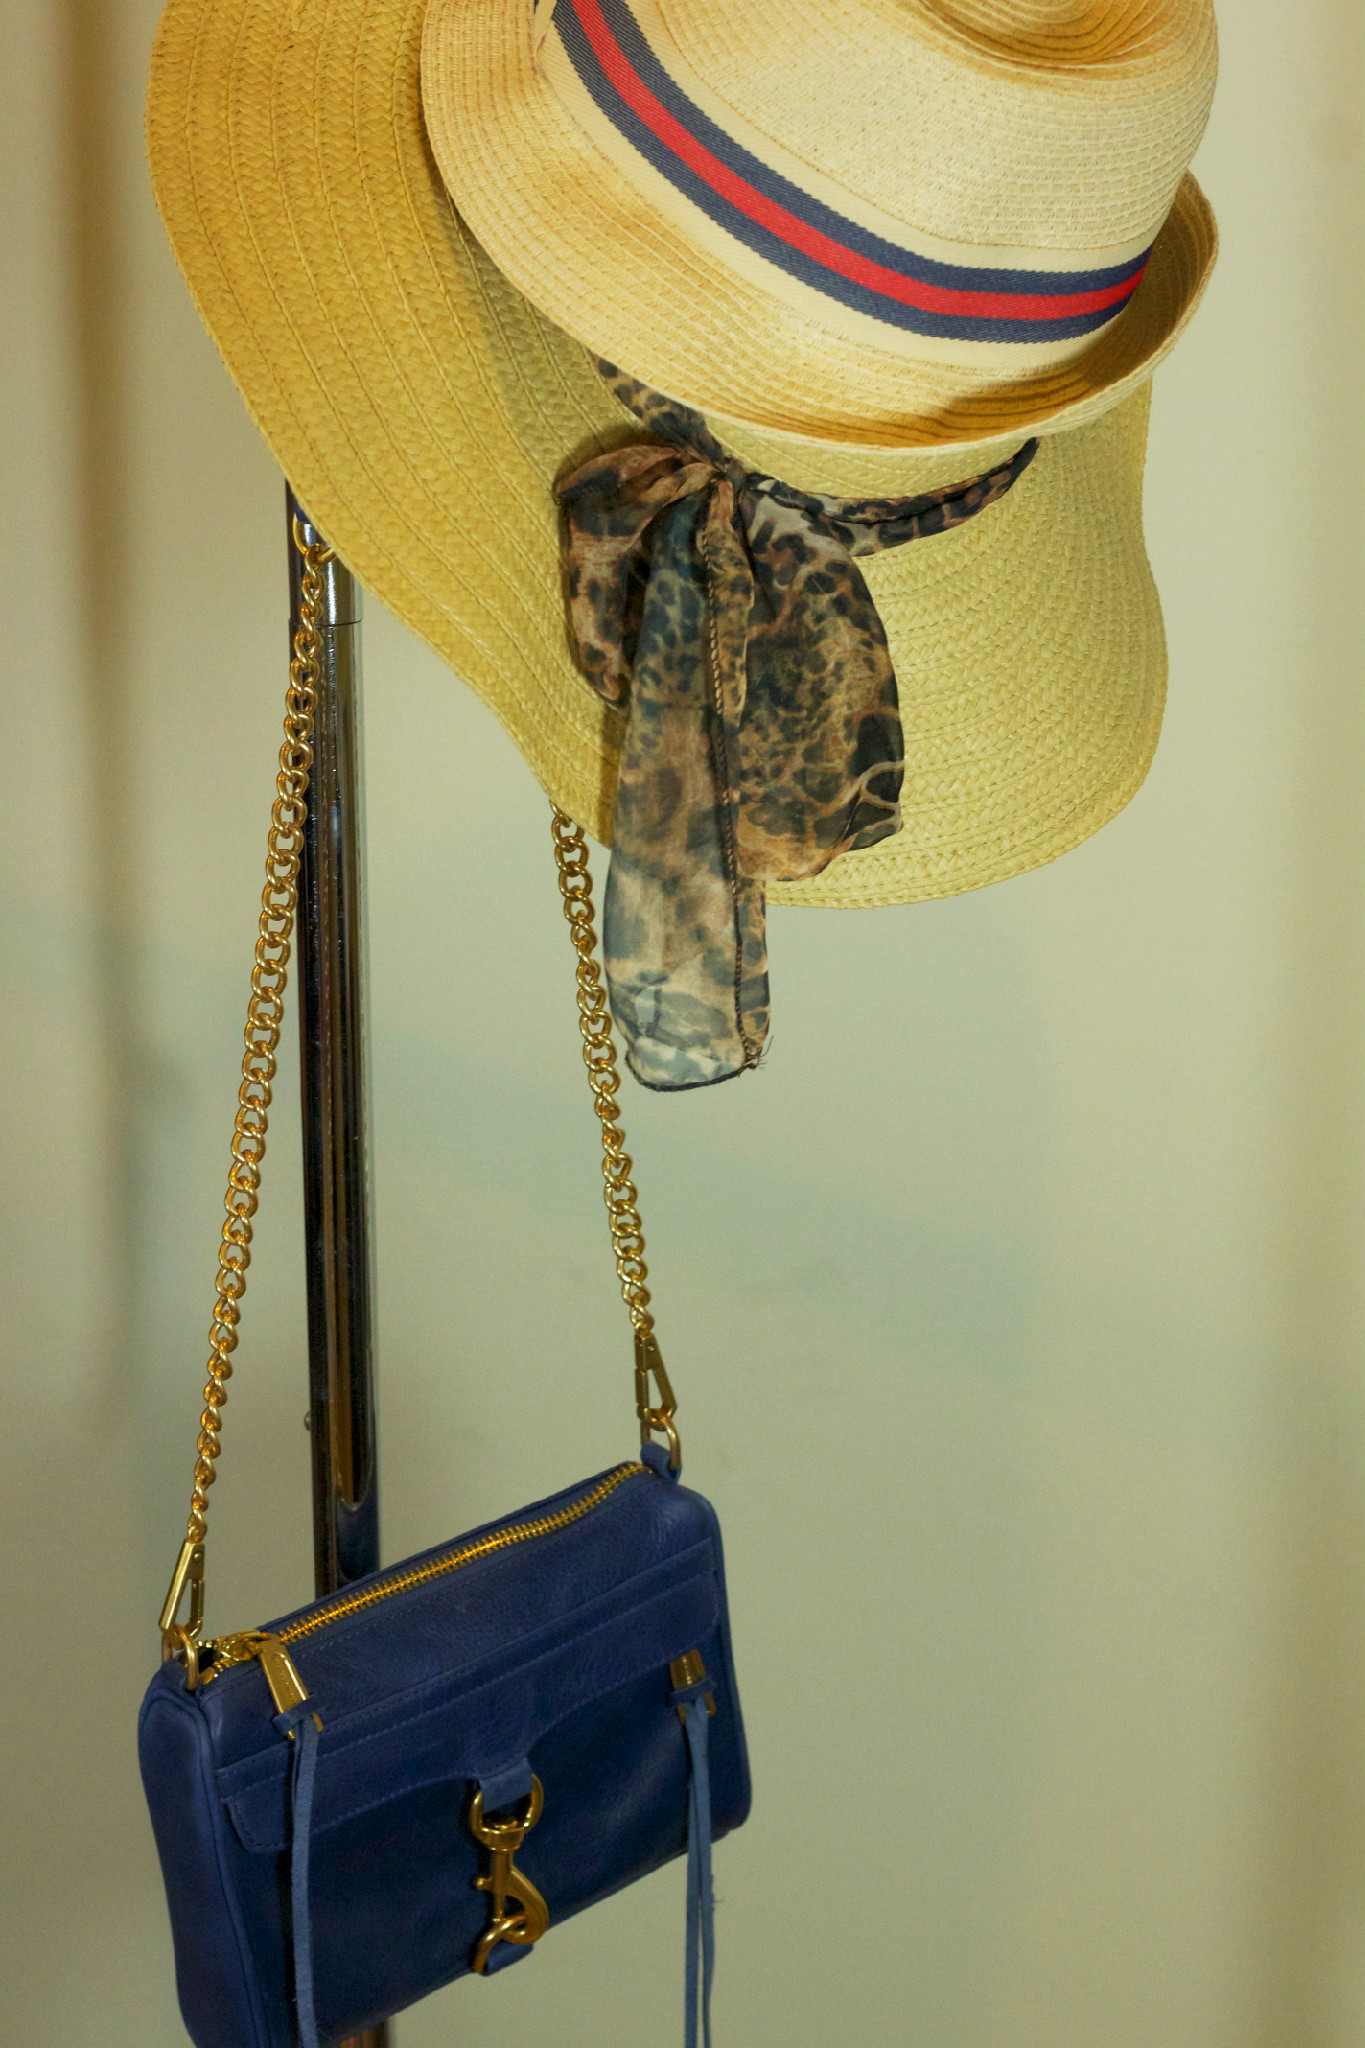 Rebecca Minkoff and sun hats